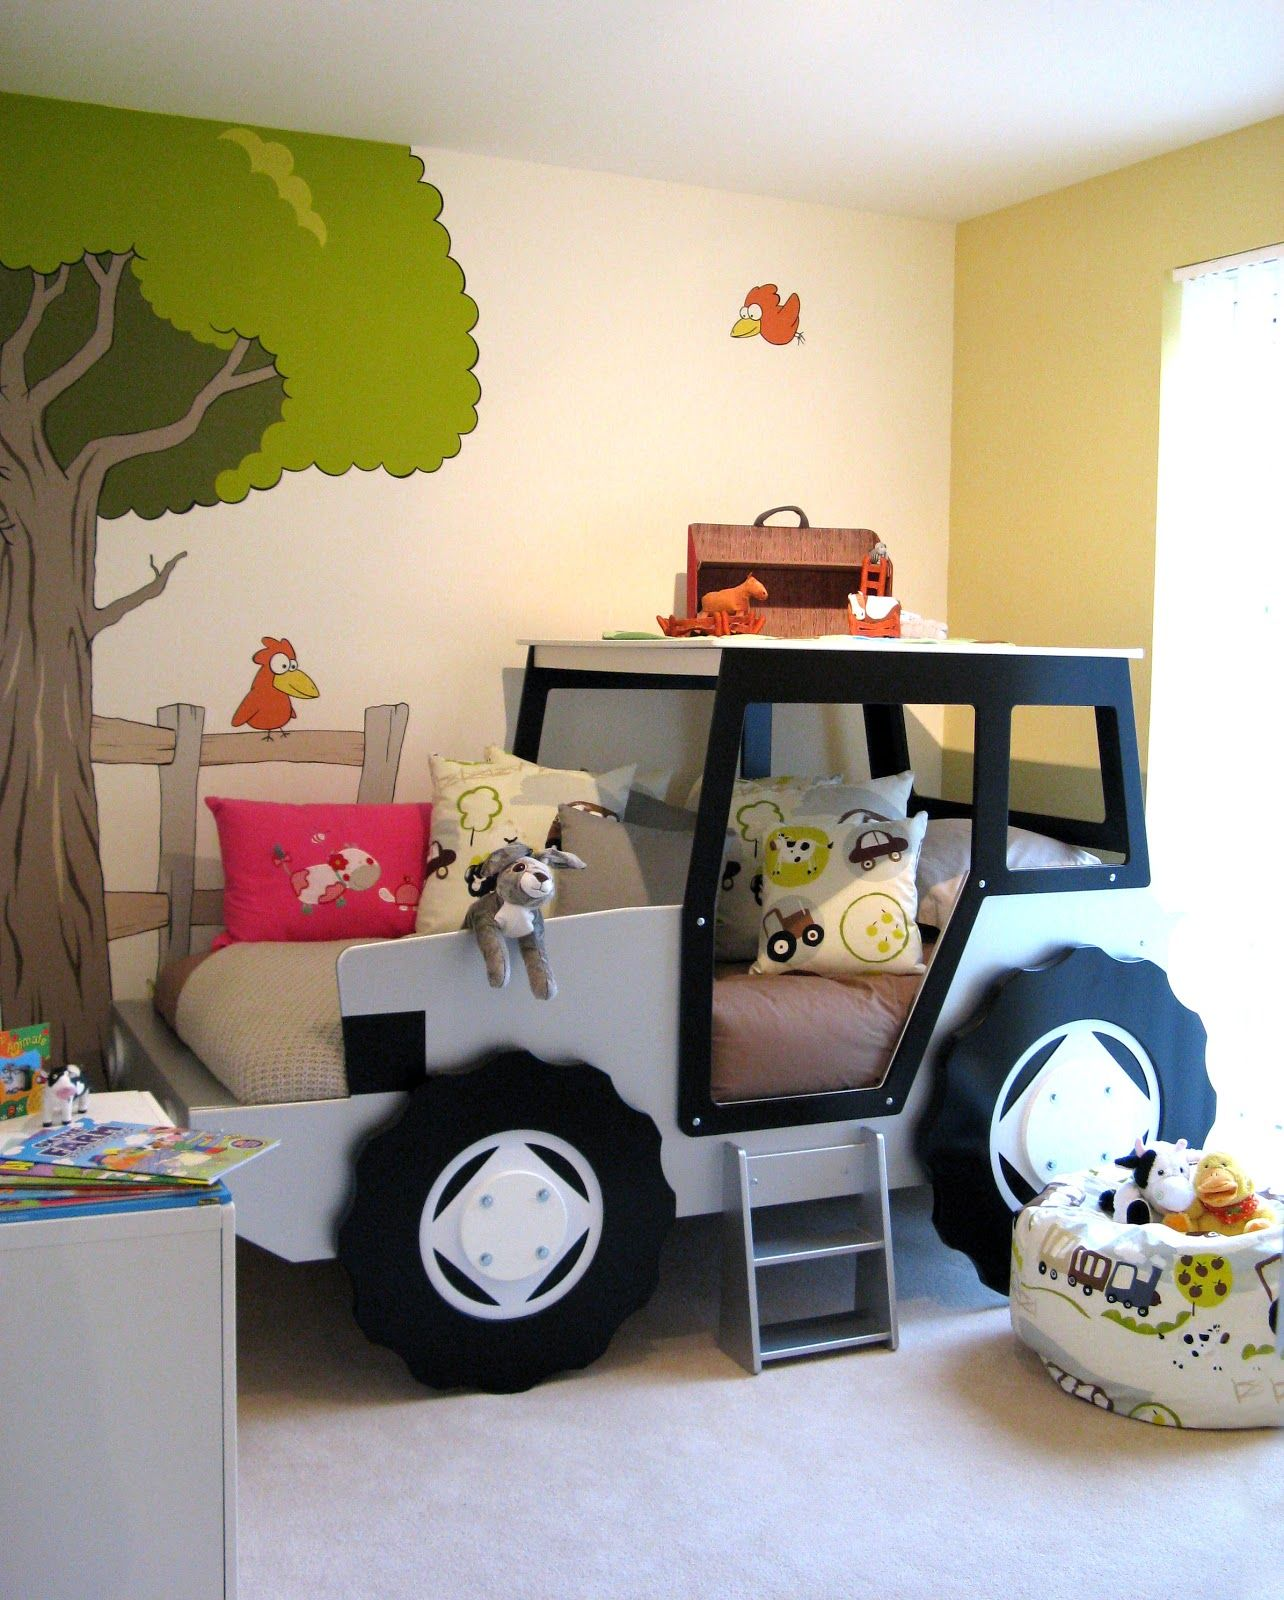 Next Home Childrens Bedroom Tractor Room Awesome Tractor Bed Kinderzimmer Ideen Pinterest